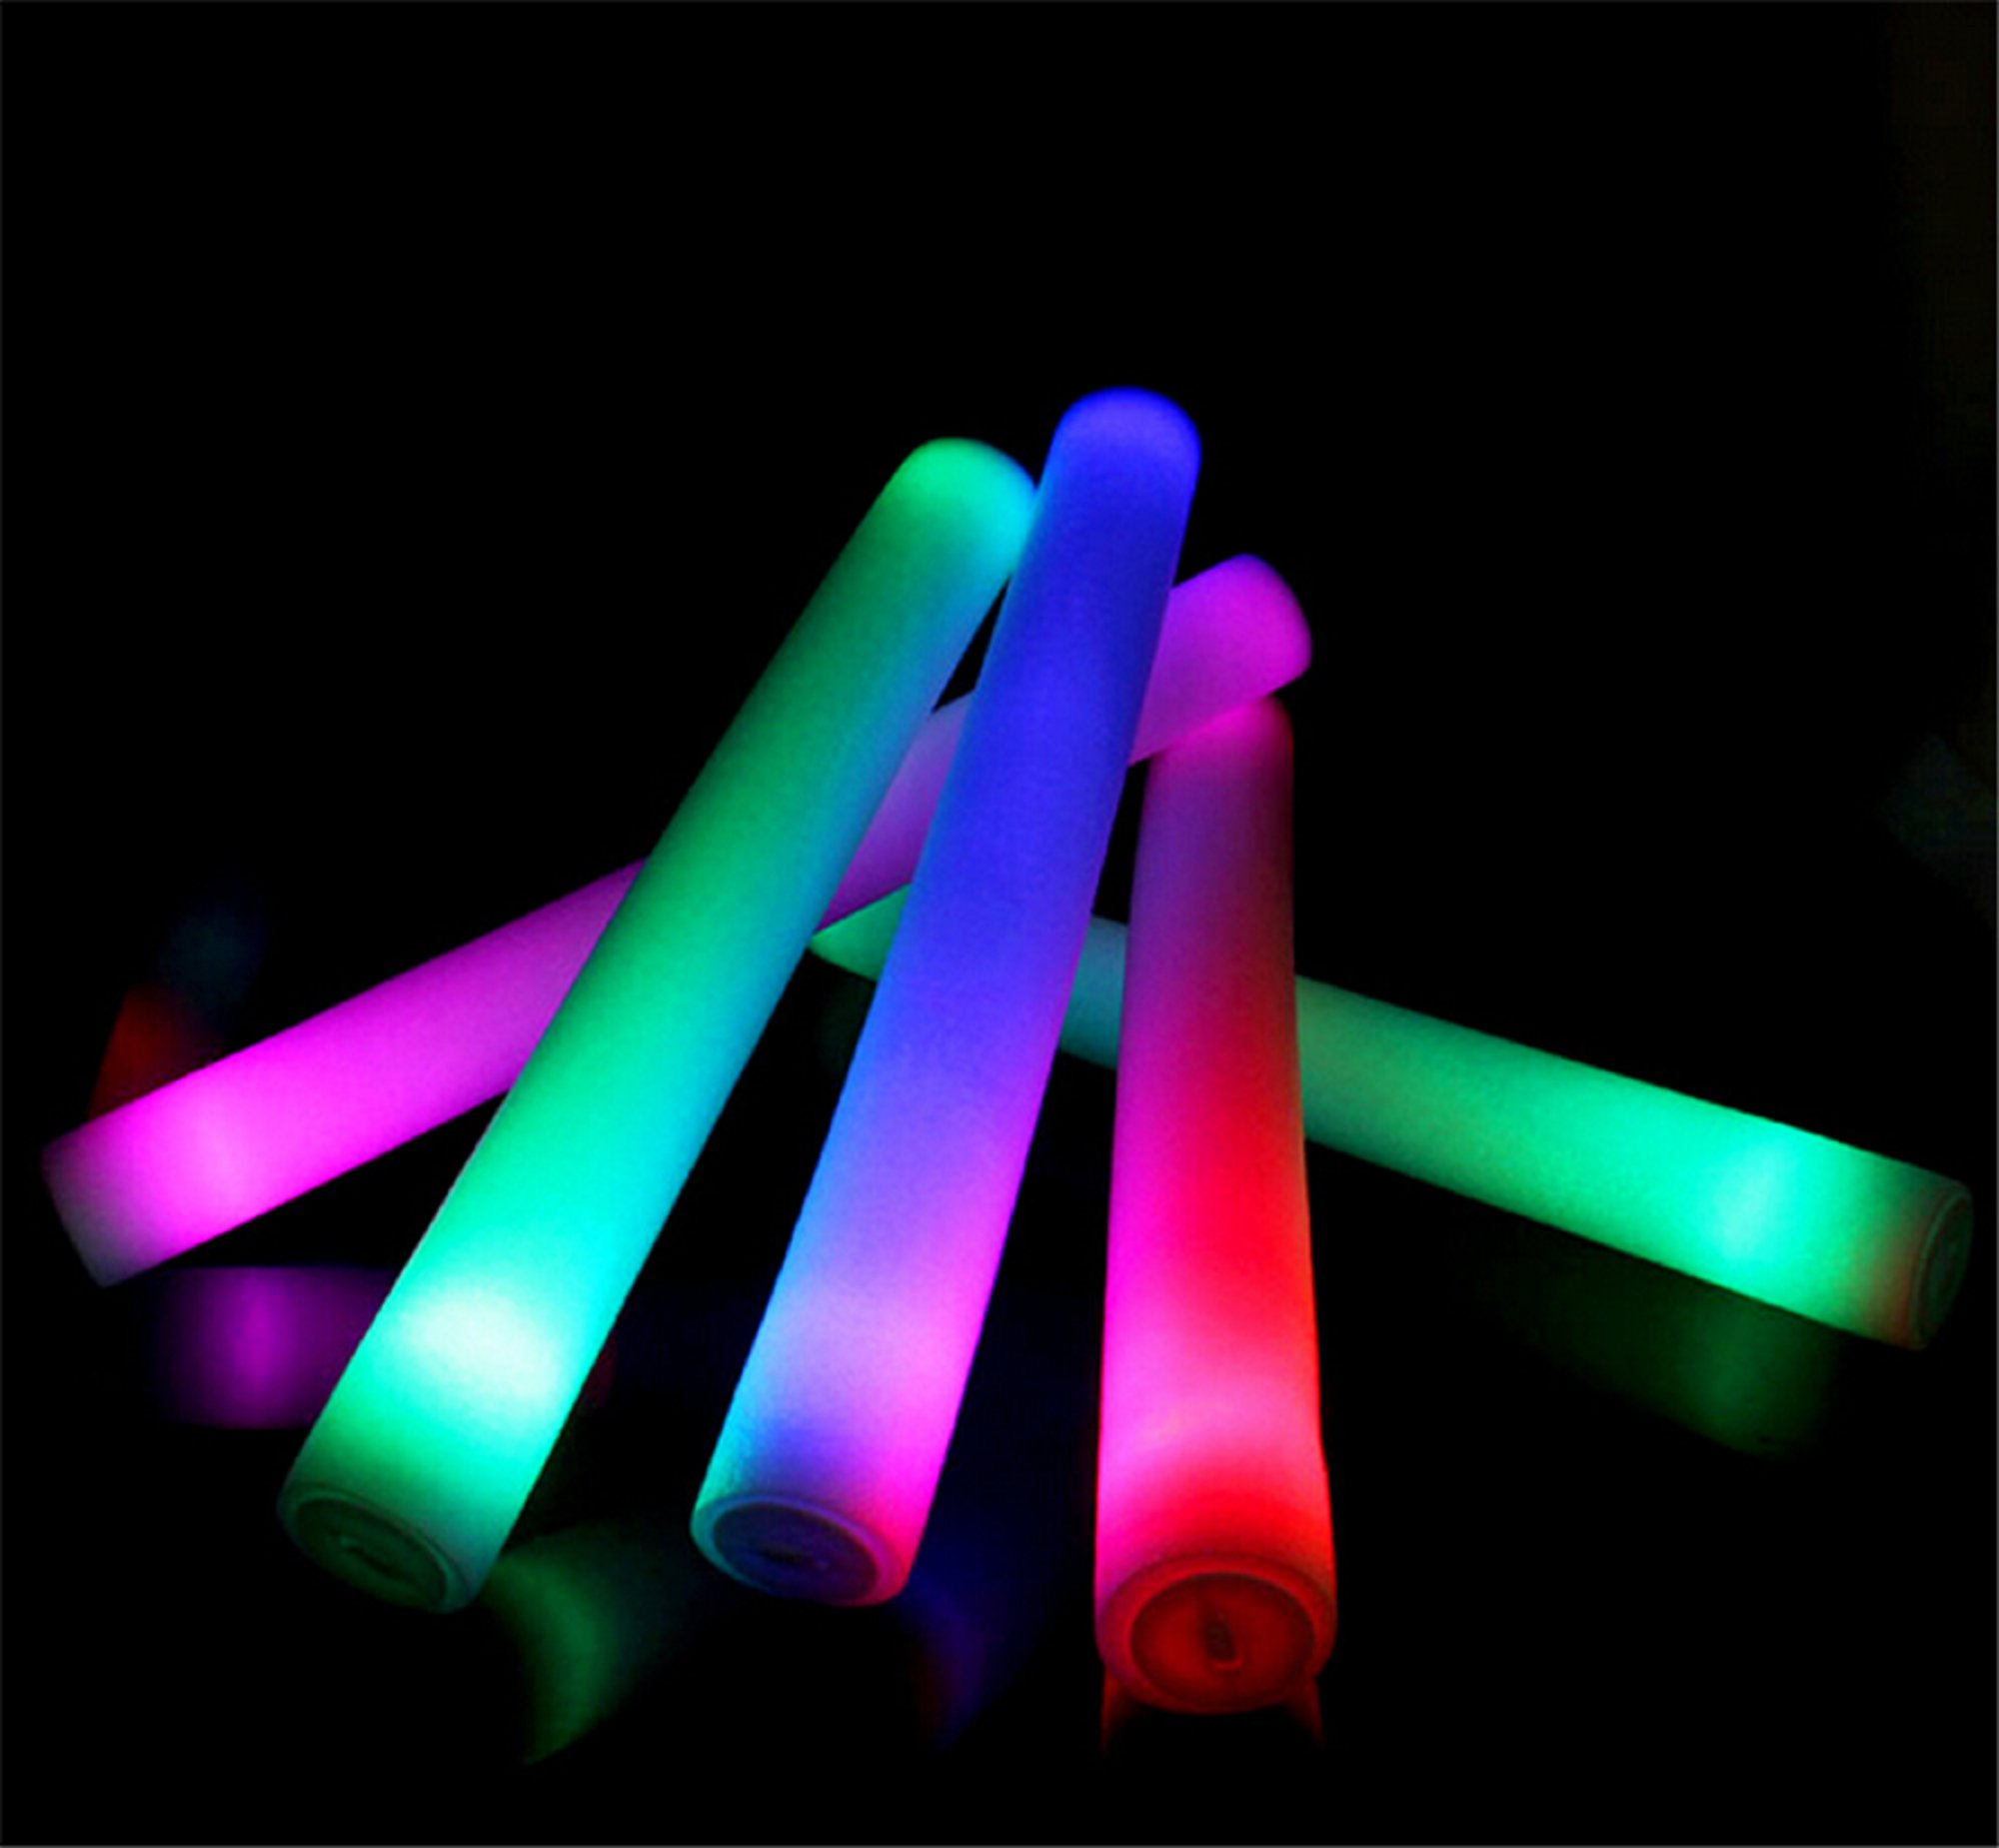 LED Foam Sticks - Our high quality LED foam sticks are sure to add more class, brightness and fun to your event.Popular for parties, concerts, nightclubs, weddings, bar/bat mitzvahs and much more.Description: 40cm x 4.8cm with an impressive 6 color mode function.Contact us now for pricing and to place your order (Pickup in Toronto).